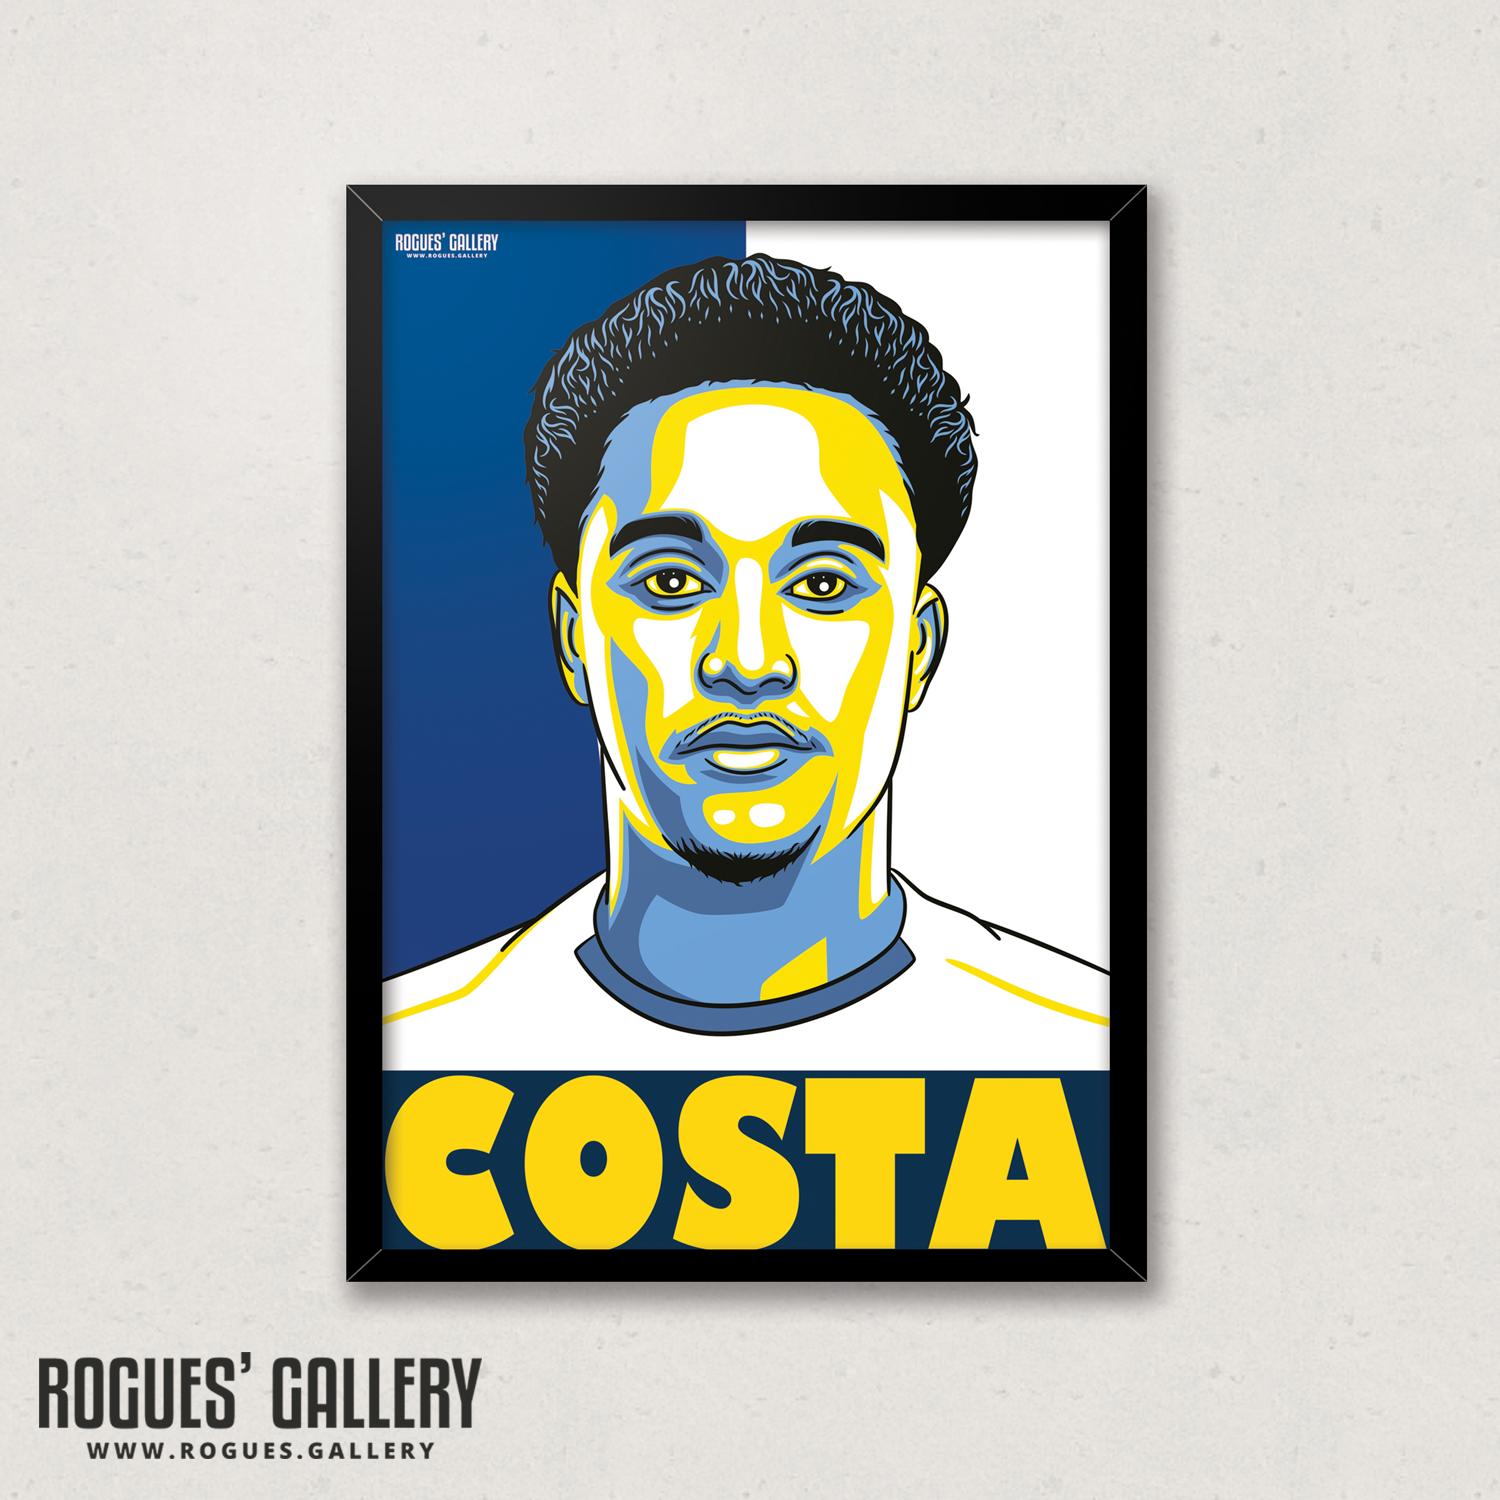 Helder Costa Leeds United FC winger A3 art print design